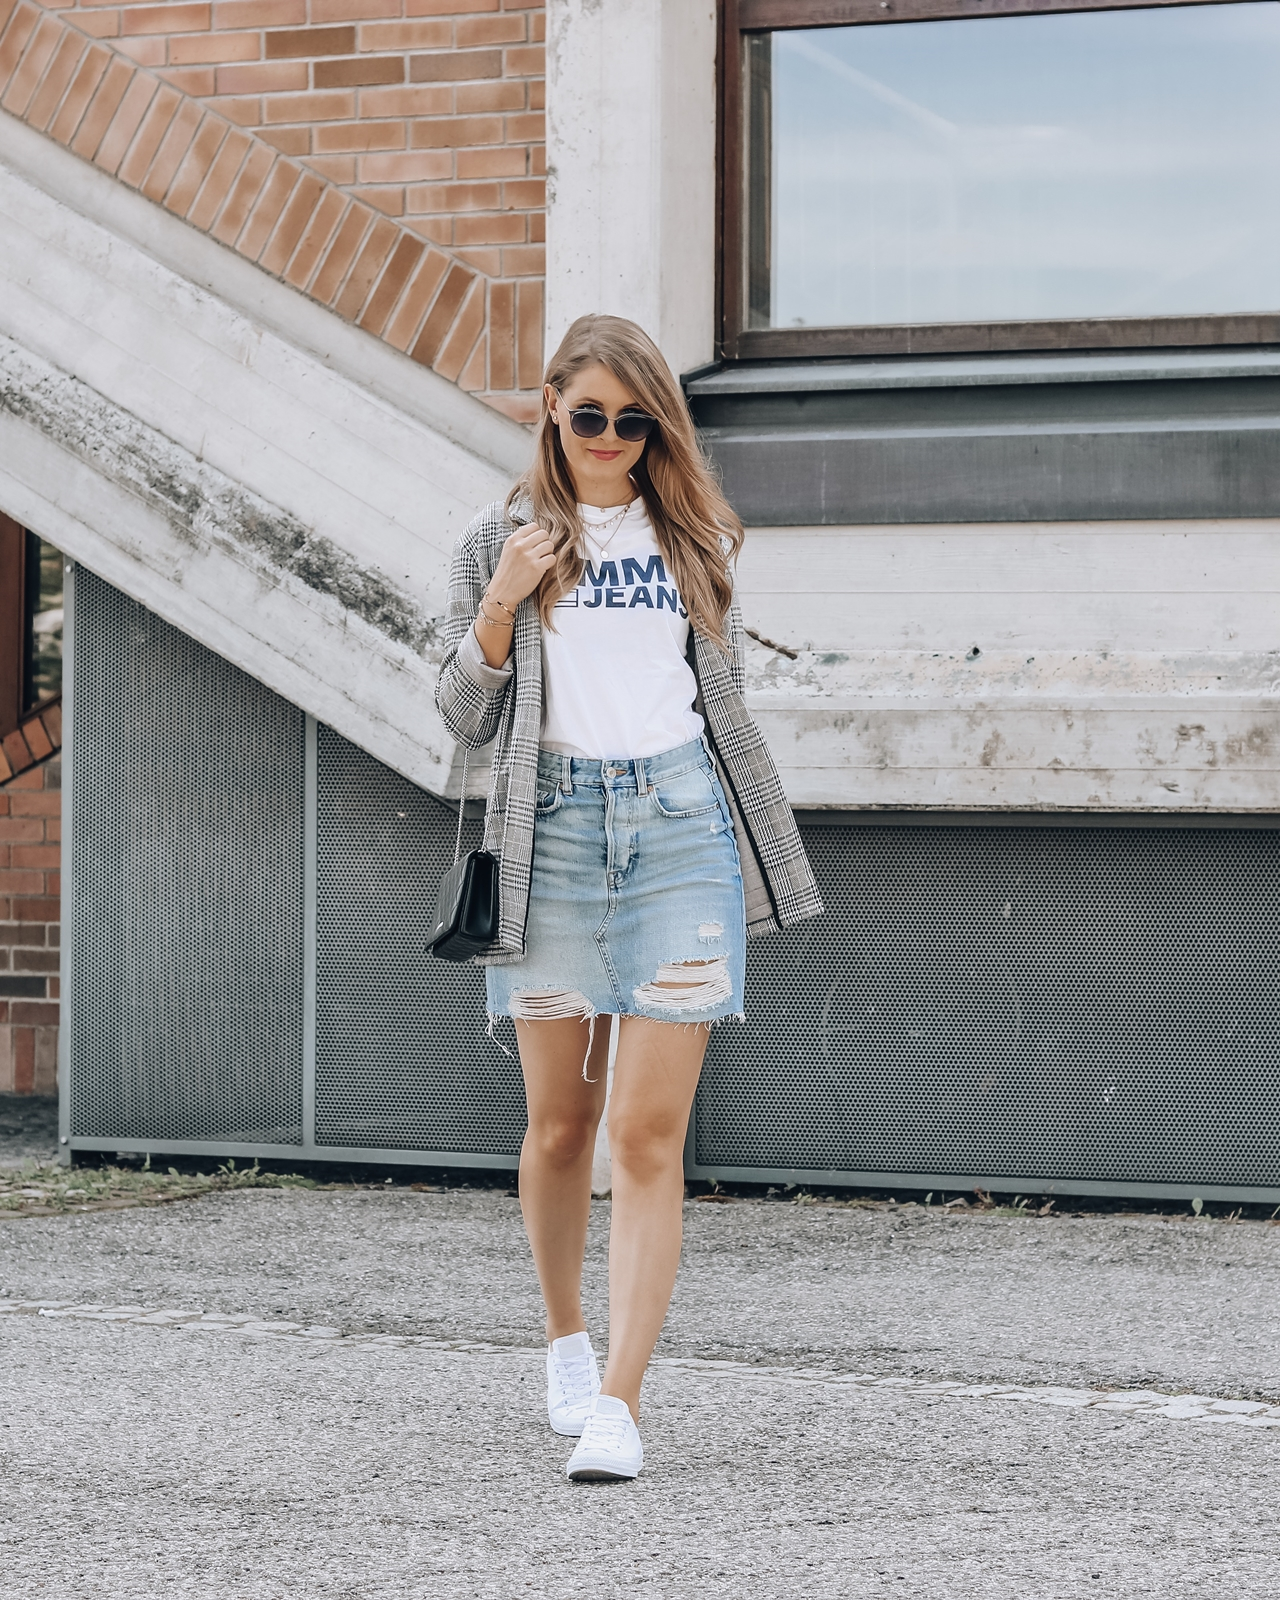 Was ziehe ich heute an 15 Outfit Ideen für Frühling und Sommer - Outfits für den Frühling - Outfits für den Sommer - Was ziehe ich an? - Was ziehe ich heute an? Outfits kombinieren - Sommerlooks - Frühlingslooks - Outfit Ideen - Fashionladyloves by Tamara Wagner - Modeblog - Fashionbloggerin